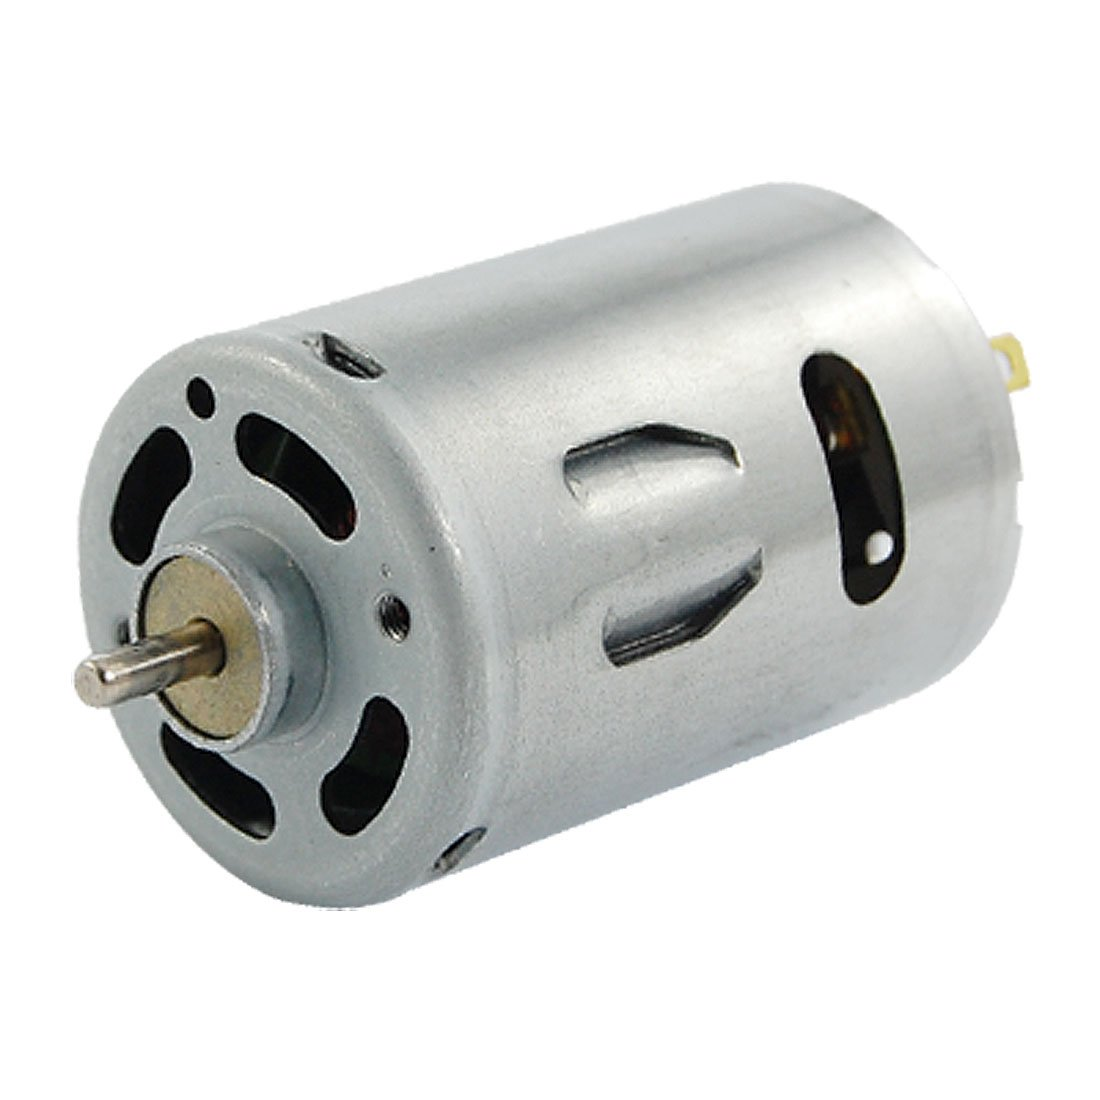 Promotion! 12V 2A 20000RPM Powerful DC Mini Motor for Electric Cars DIY Project цена и фото